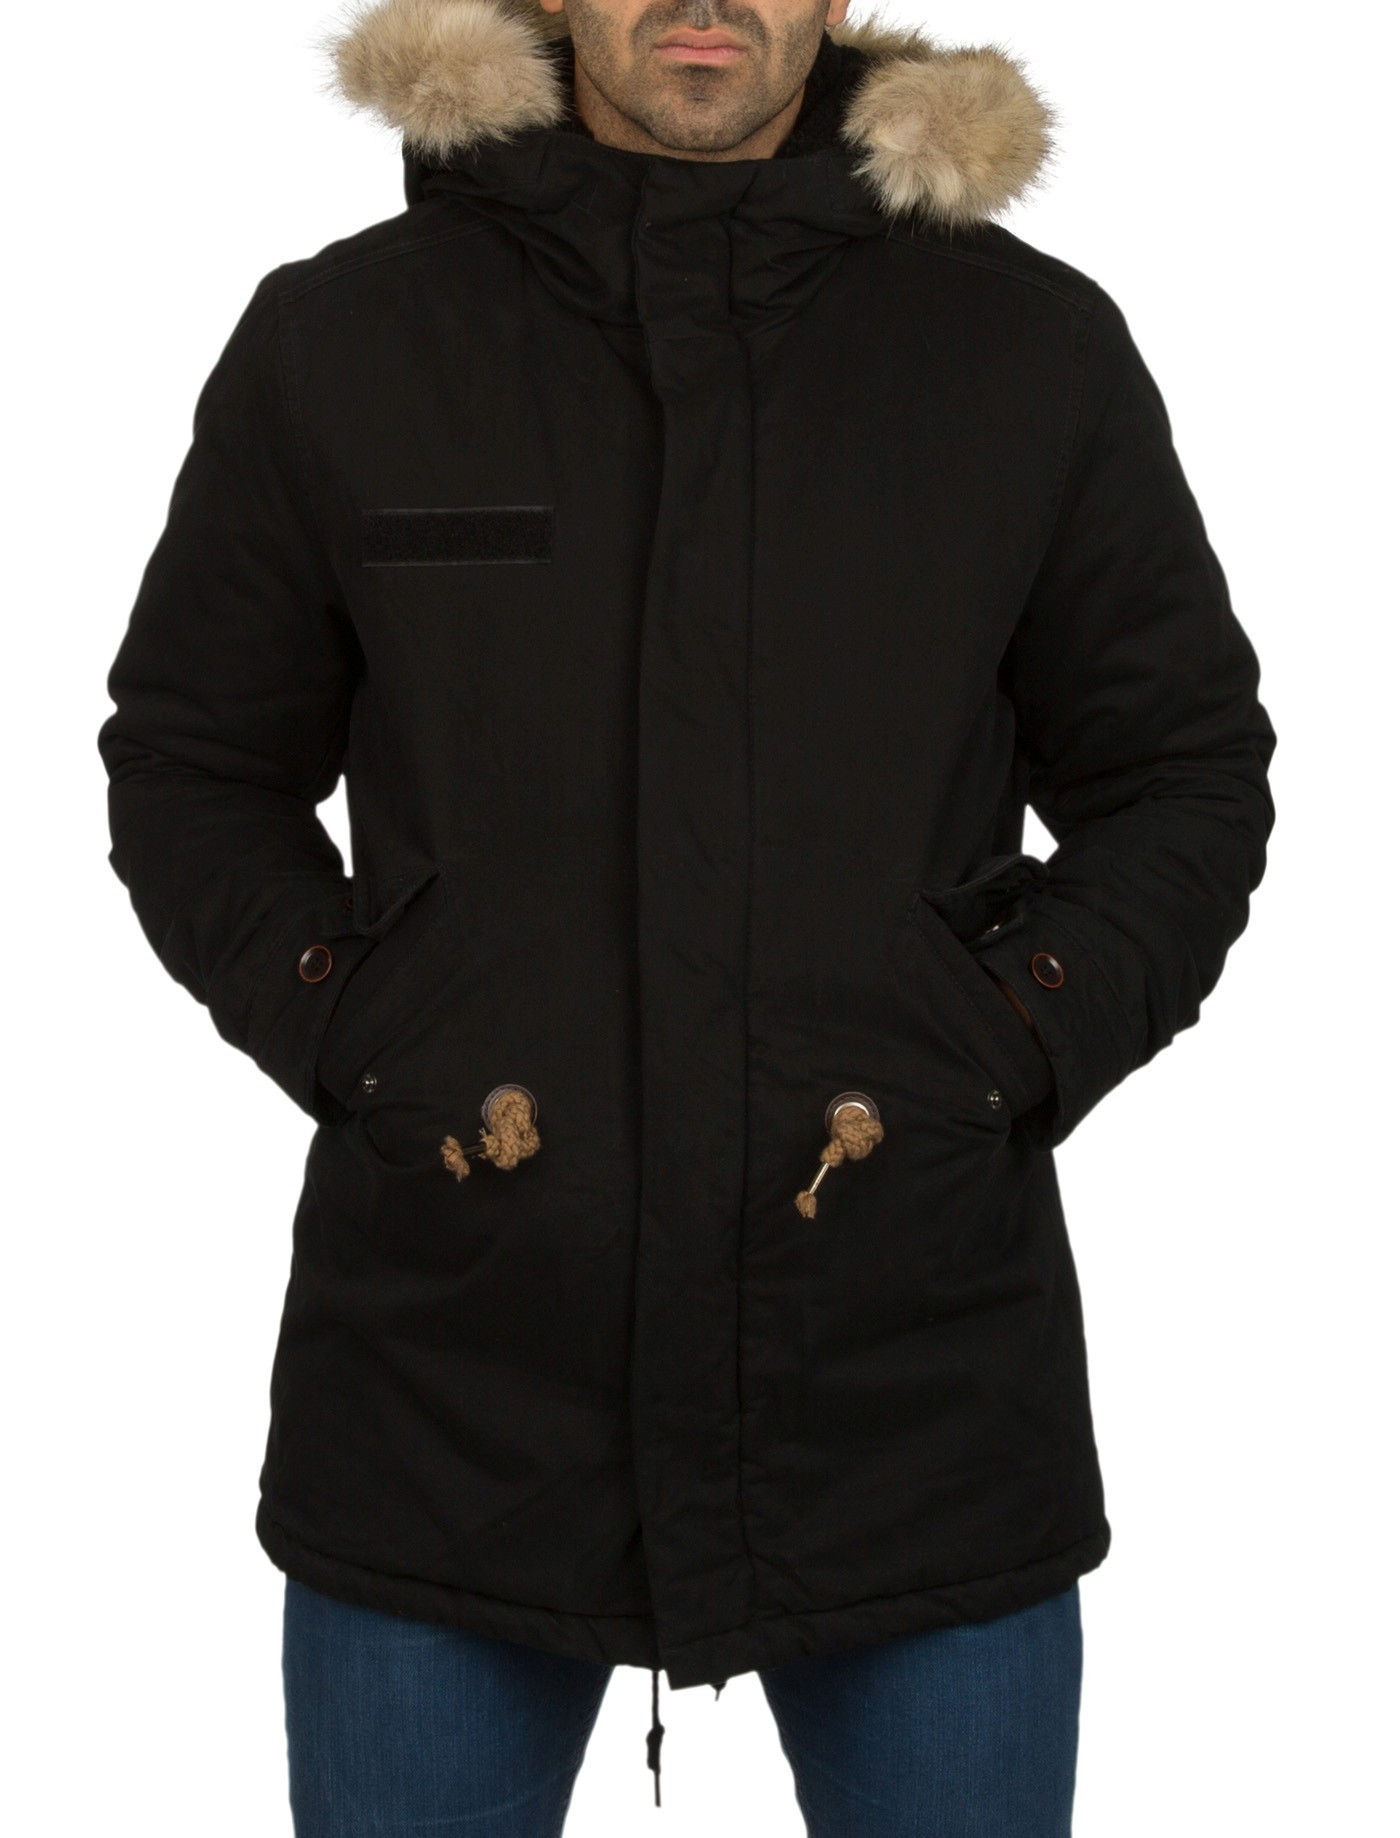 manteau parka homme noir oversize. Black Bedroom Furniture Sets. Home Design Ideas